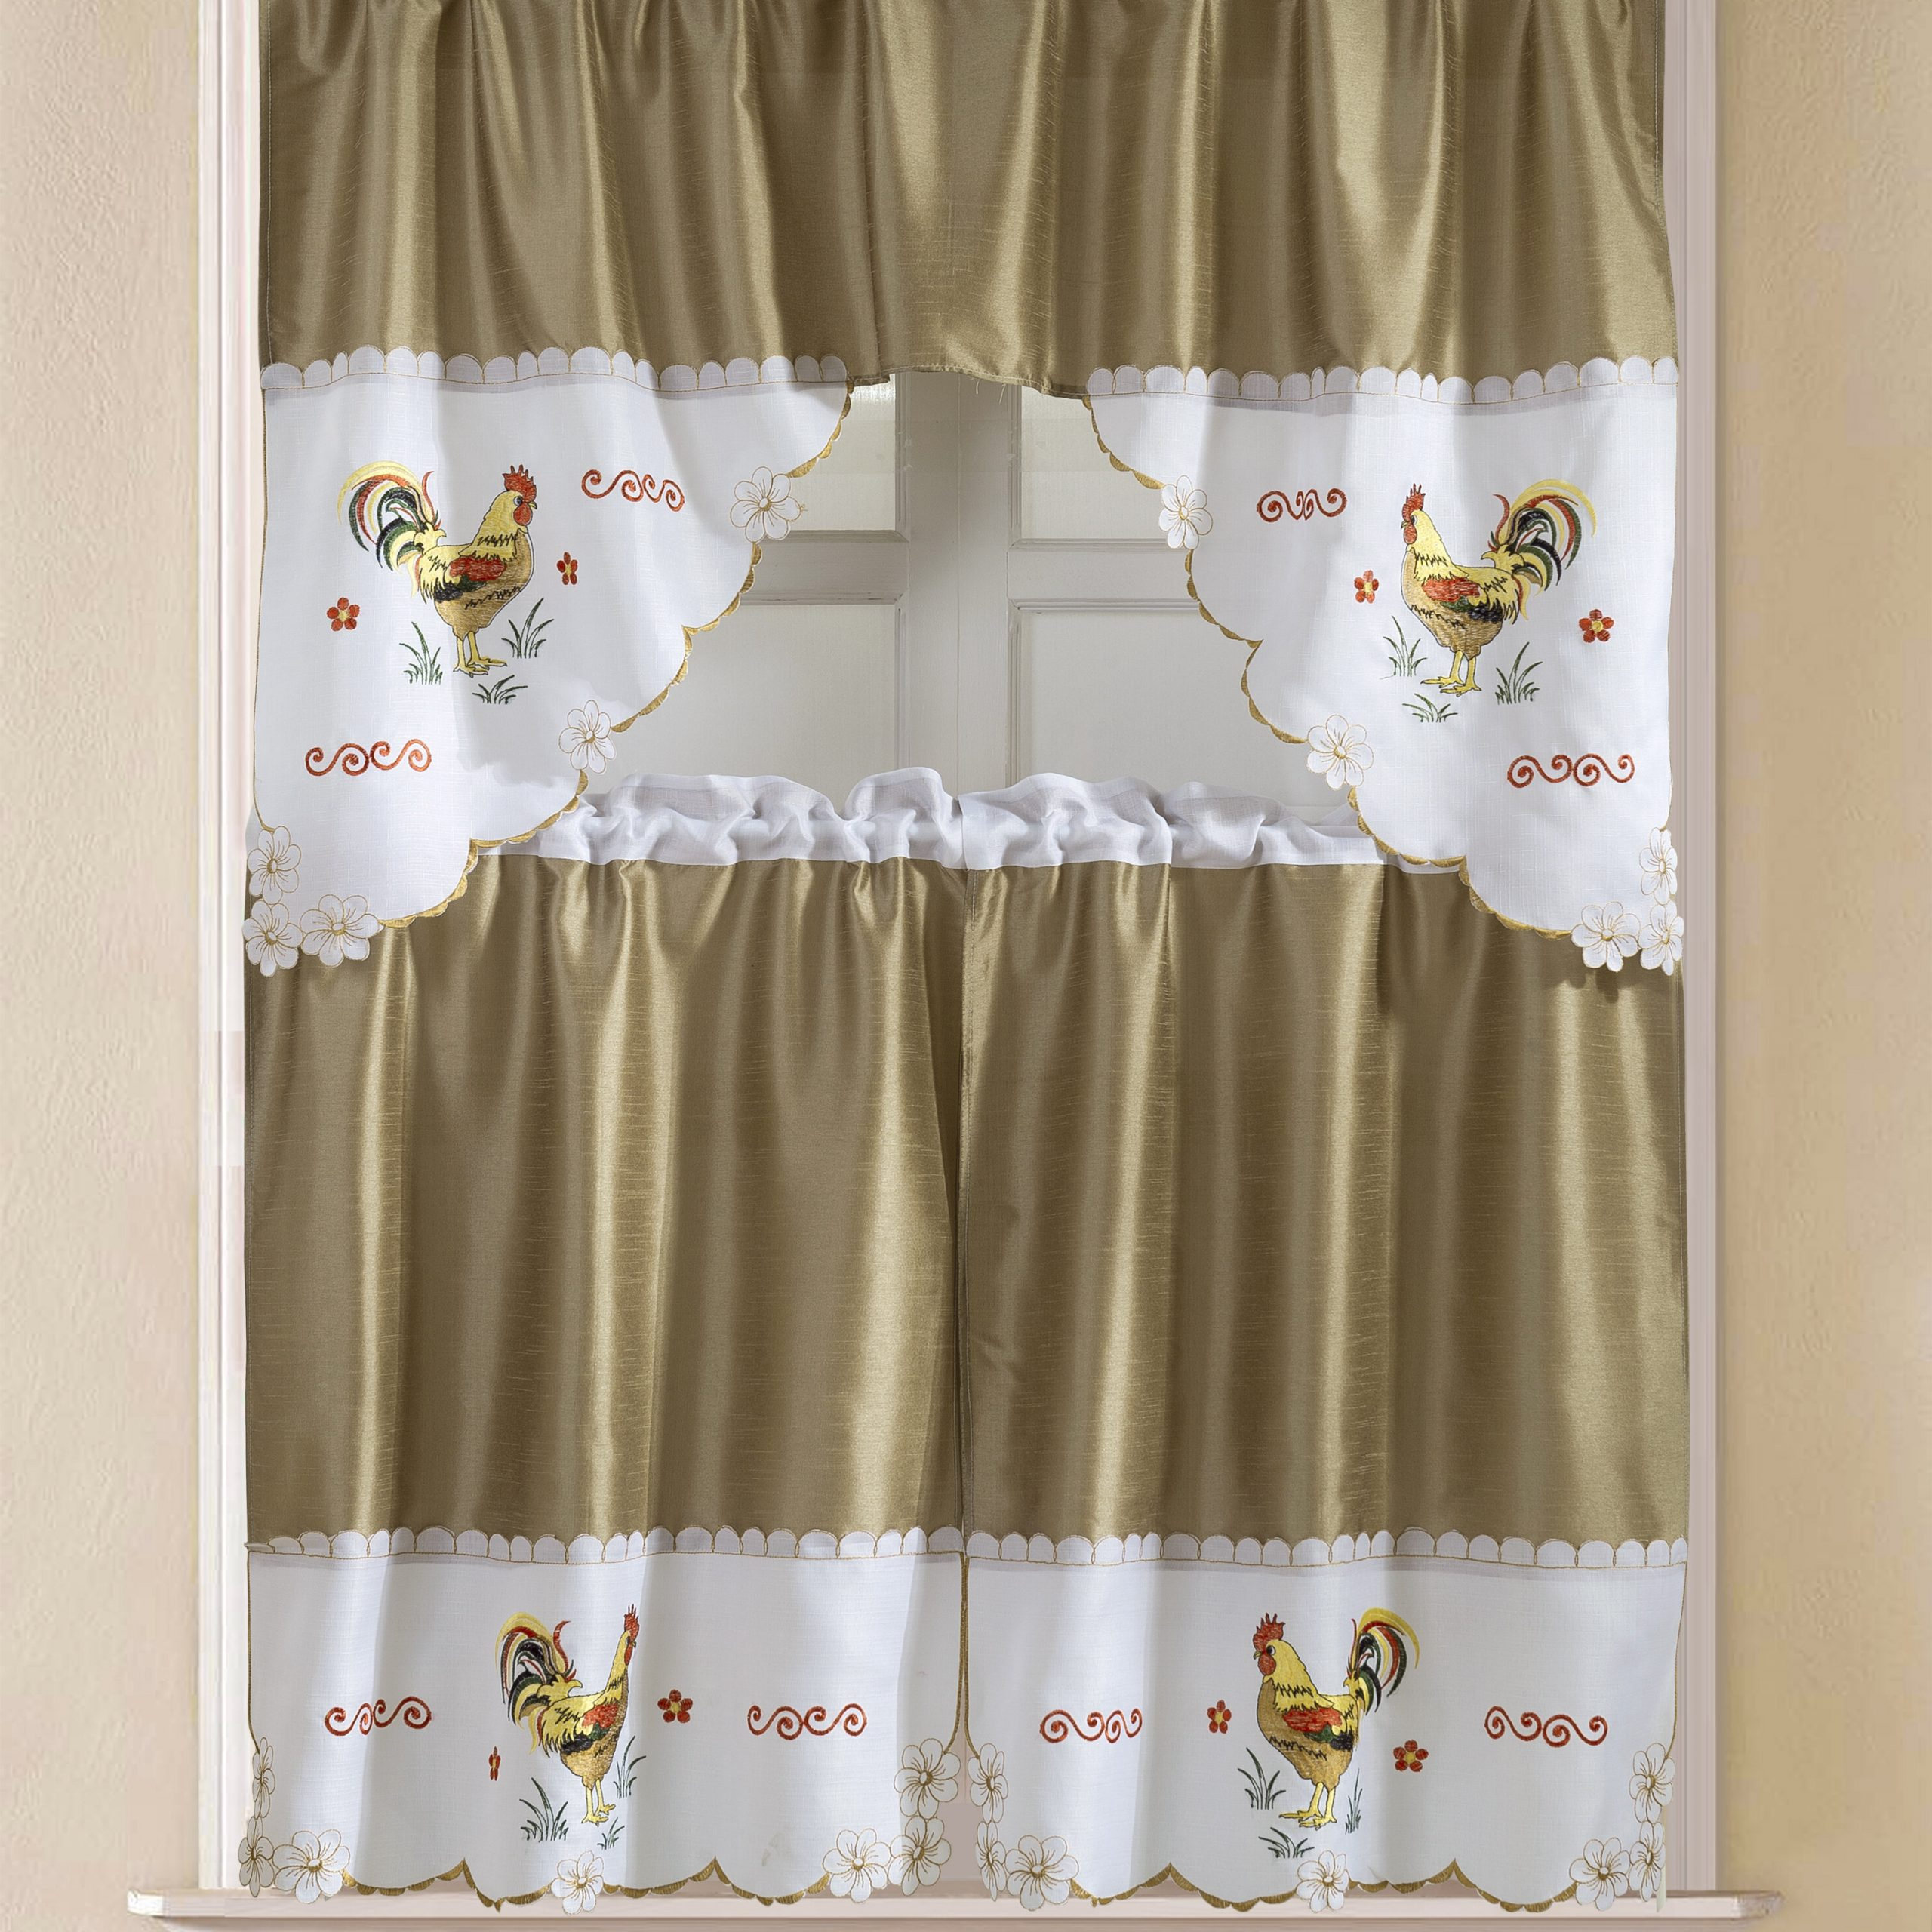 "Sorrentino Faux Silk 3 Piece 60"" Kitchen Curtain Set With Regard To Current Faux Silk 3 Piece Kitchen Curtain Sets (View 4 of 20)"